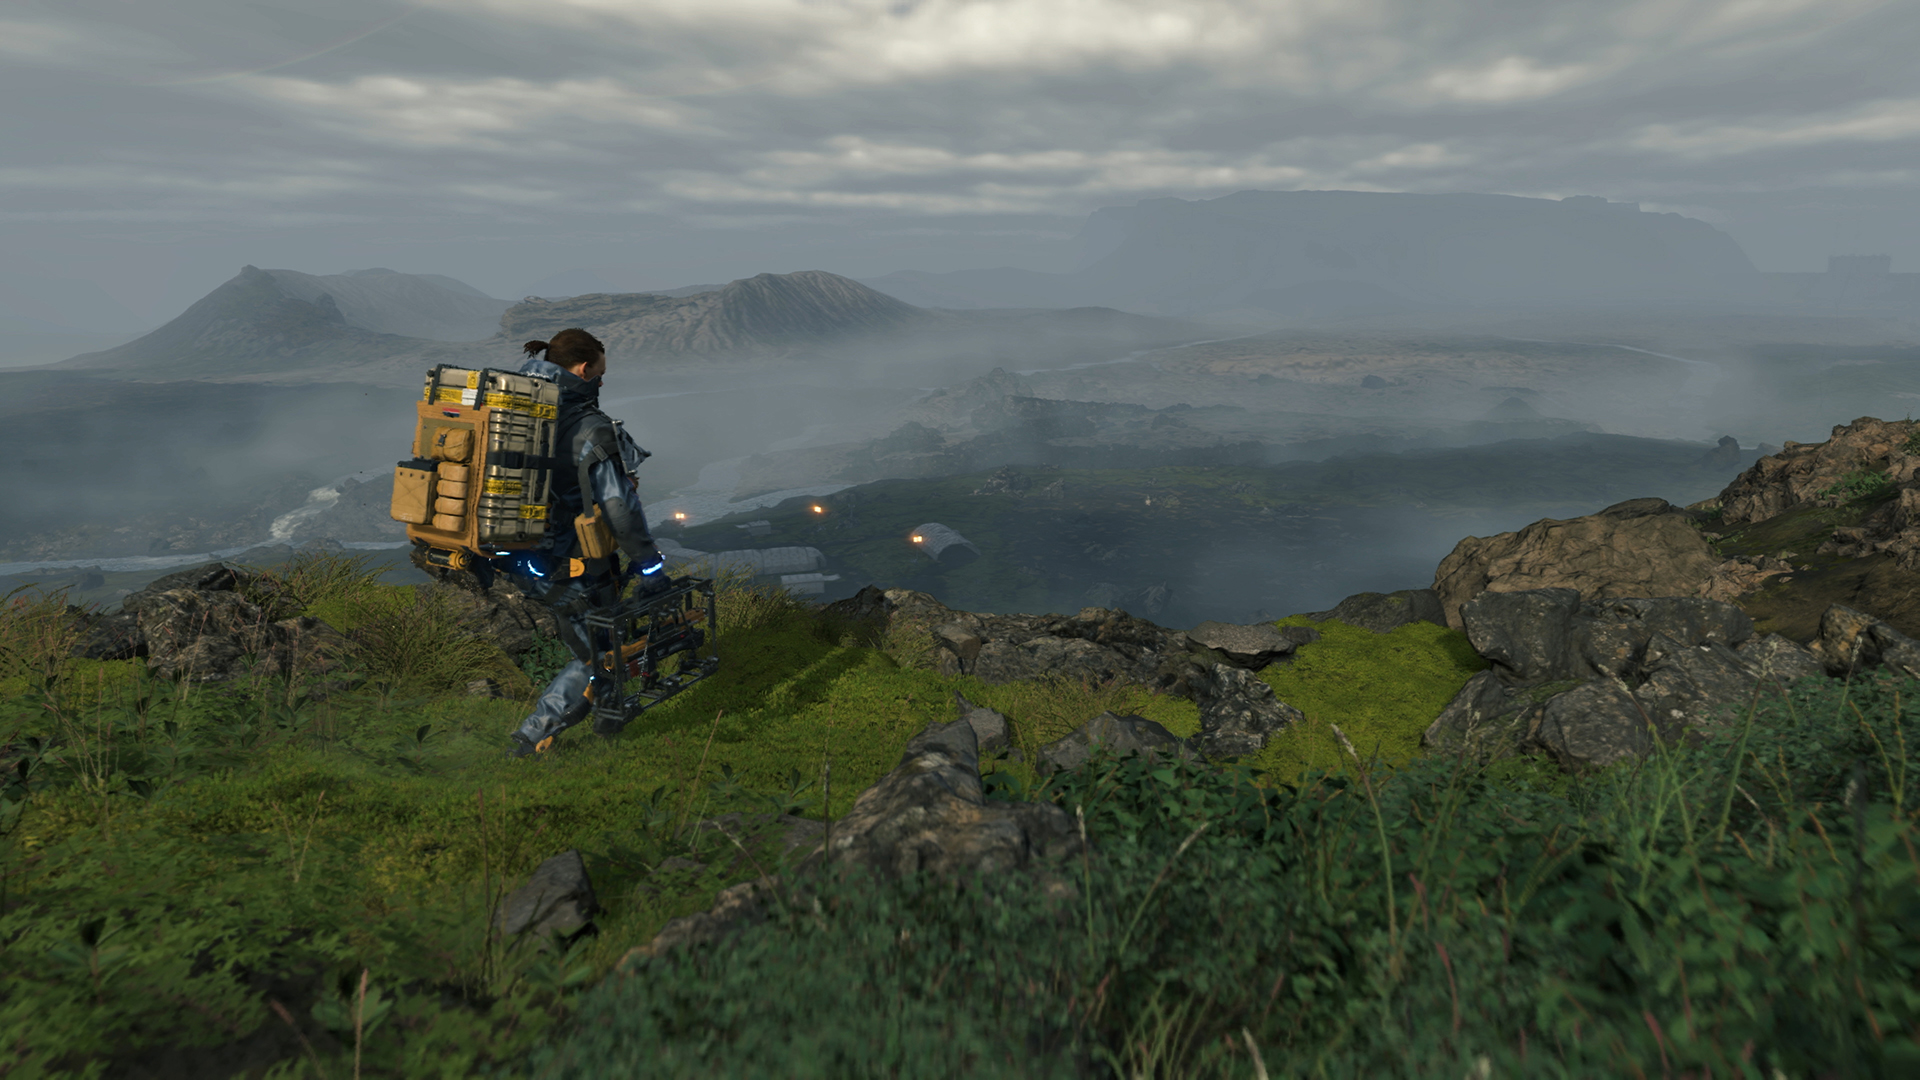 DLSS 2.0 will make a 4K60 monster out of your RTX 2060 in Death Stranding